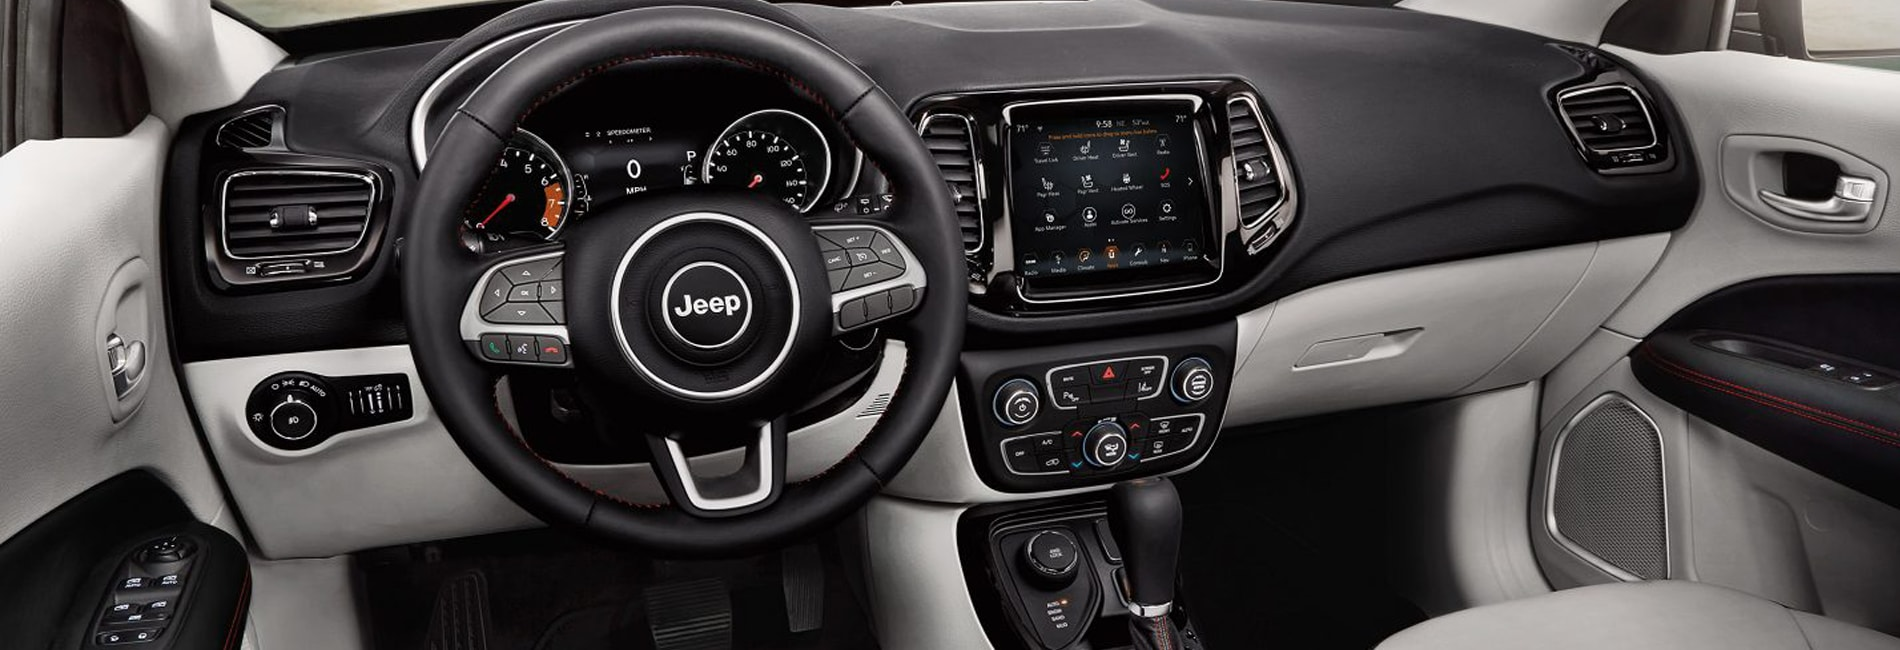 Jeep Compass Interior and Exterior Vehicle Features